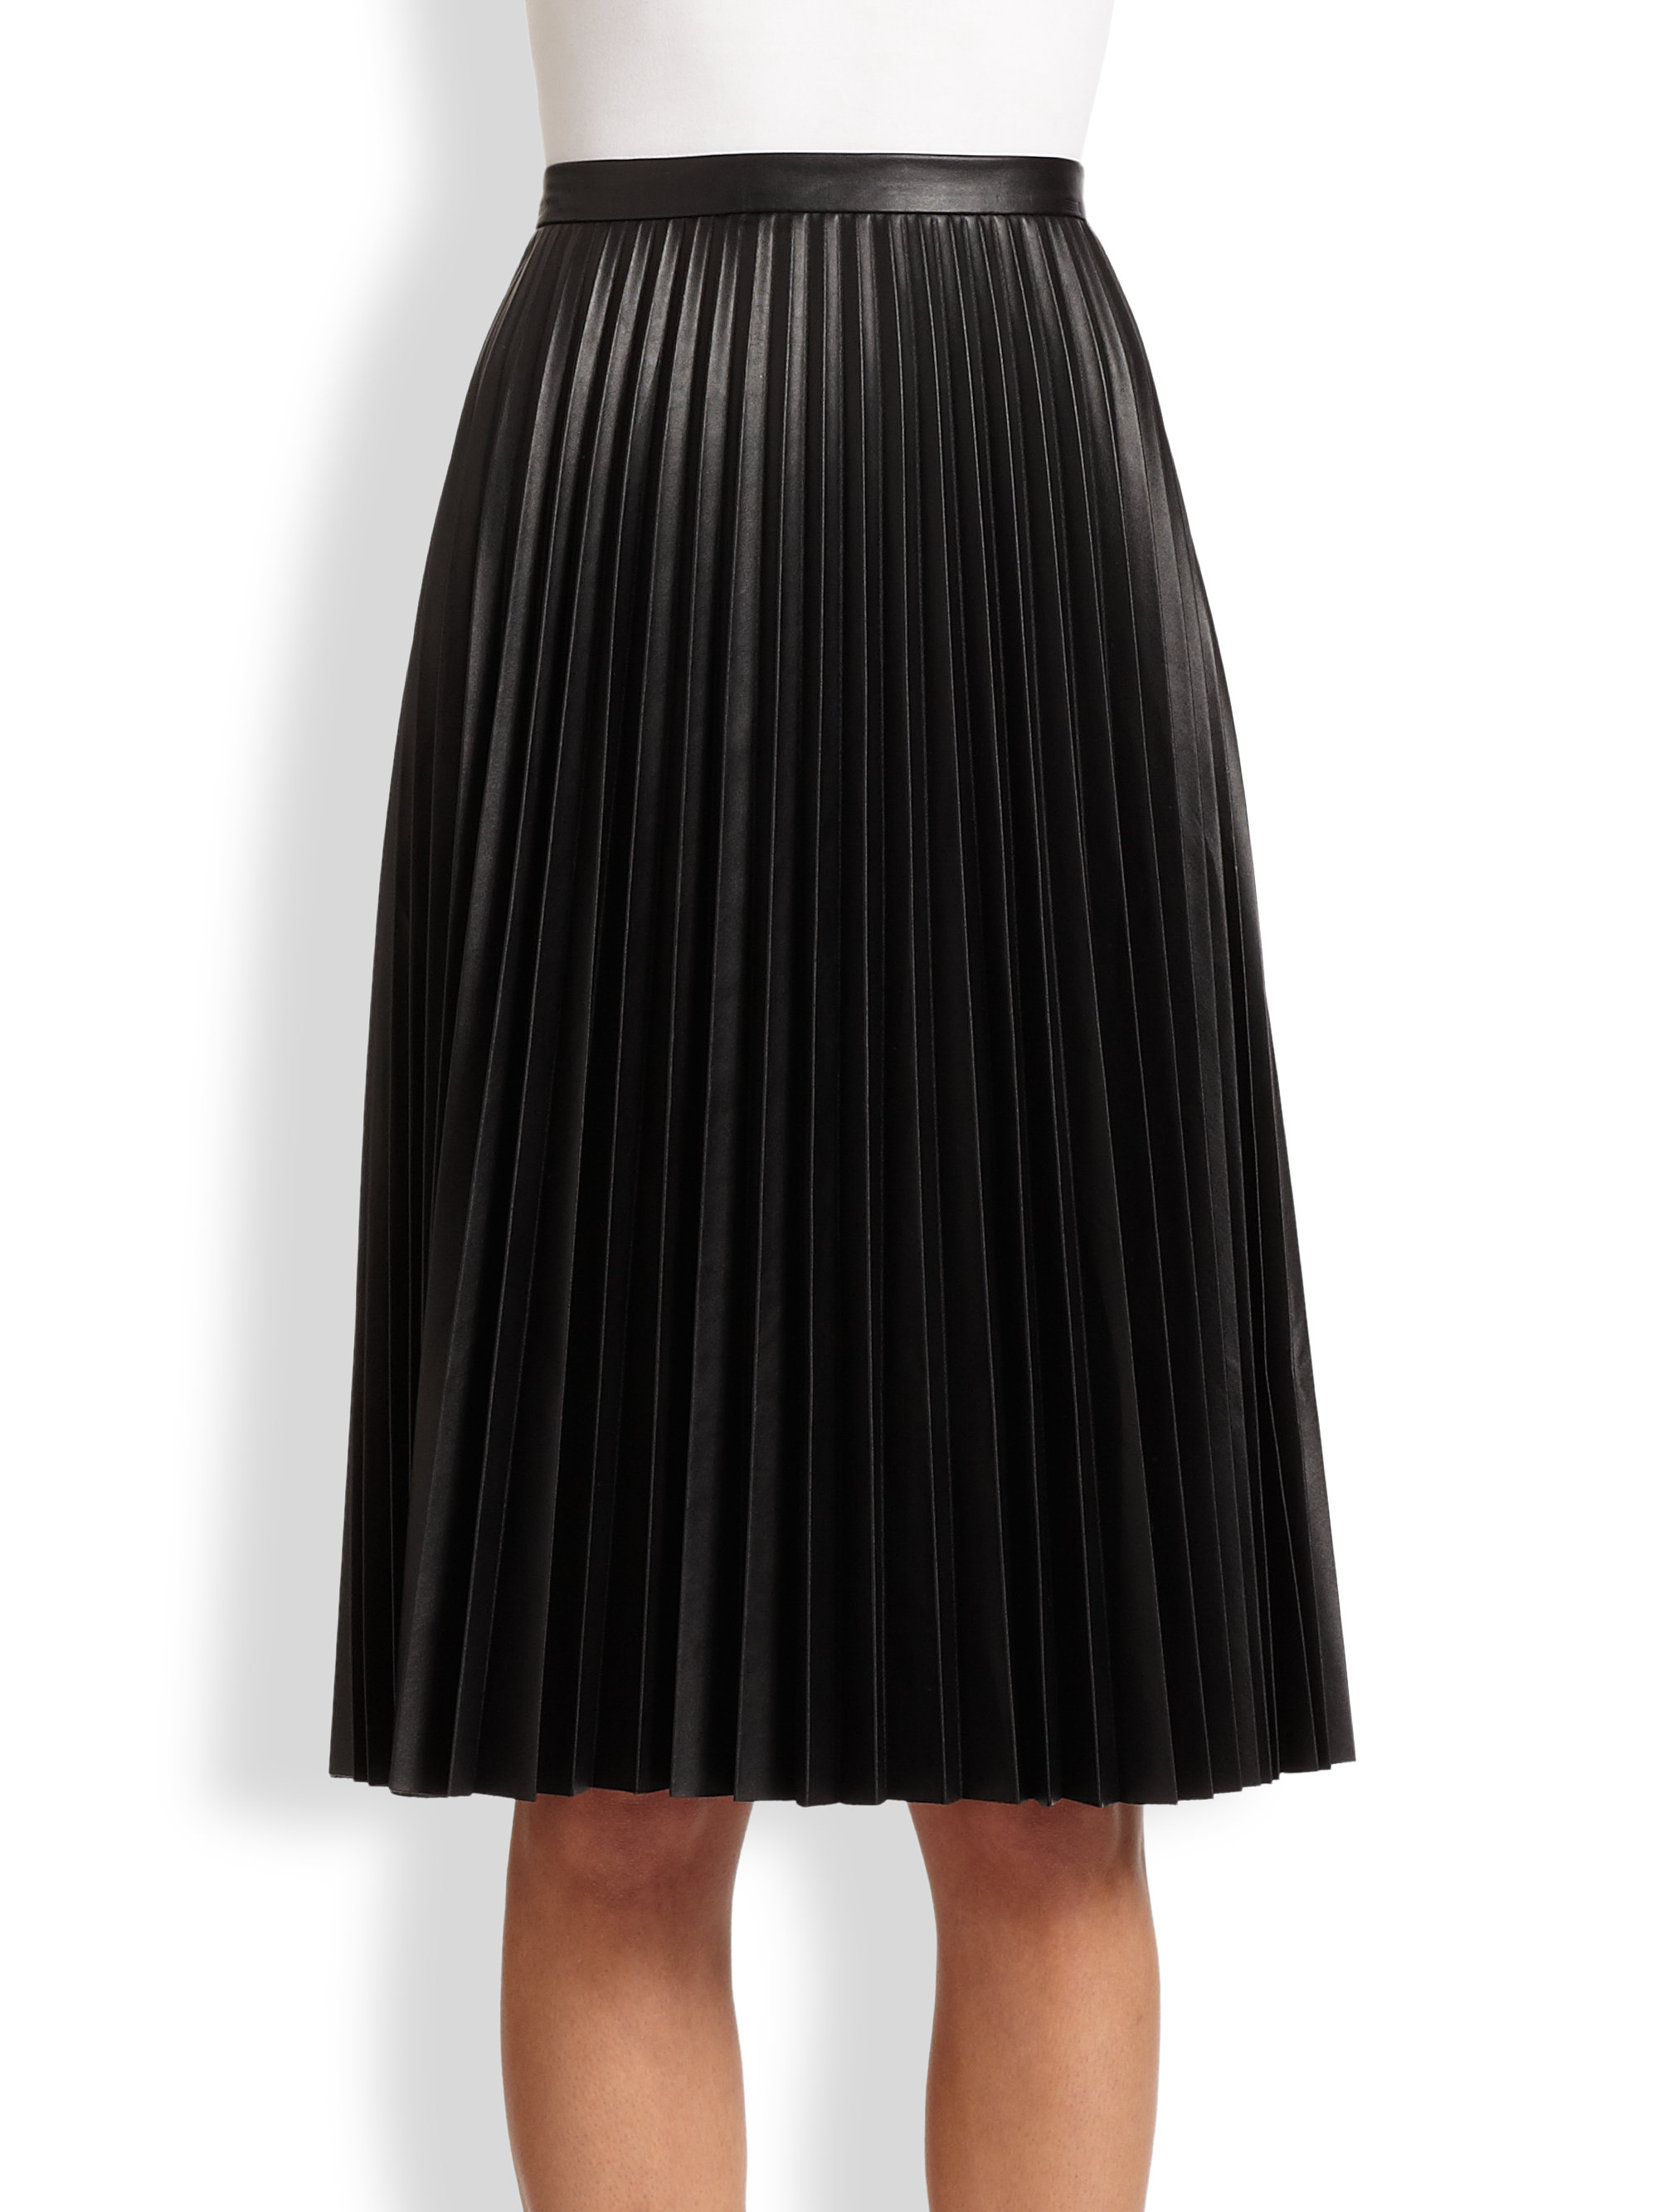 Find great deals on eBay for black faux leather skirt. Shop with confidence.